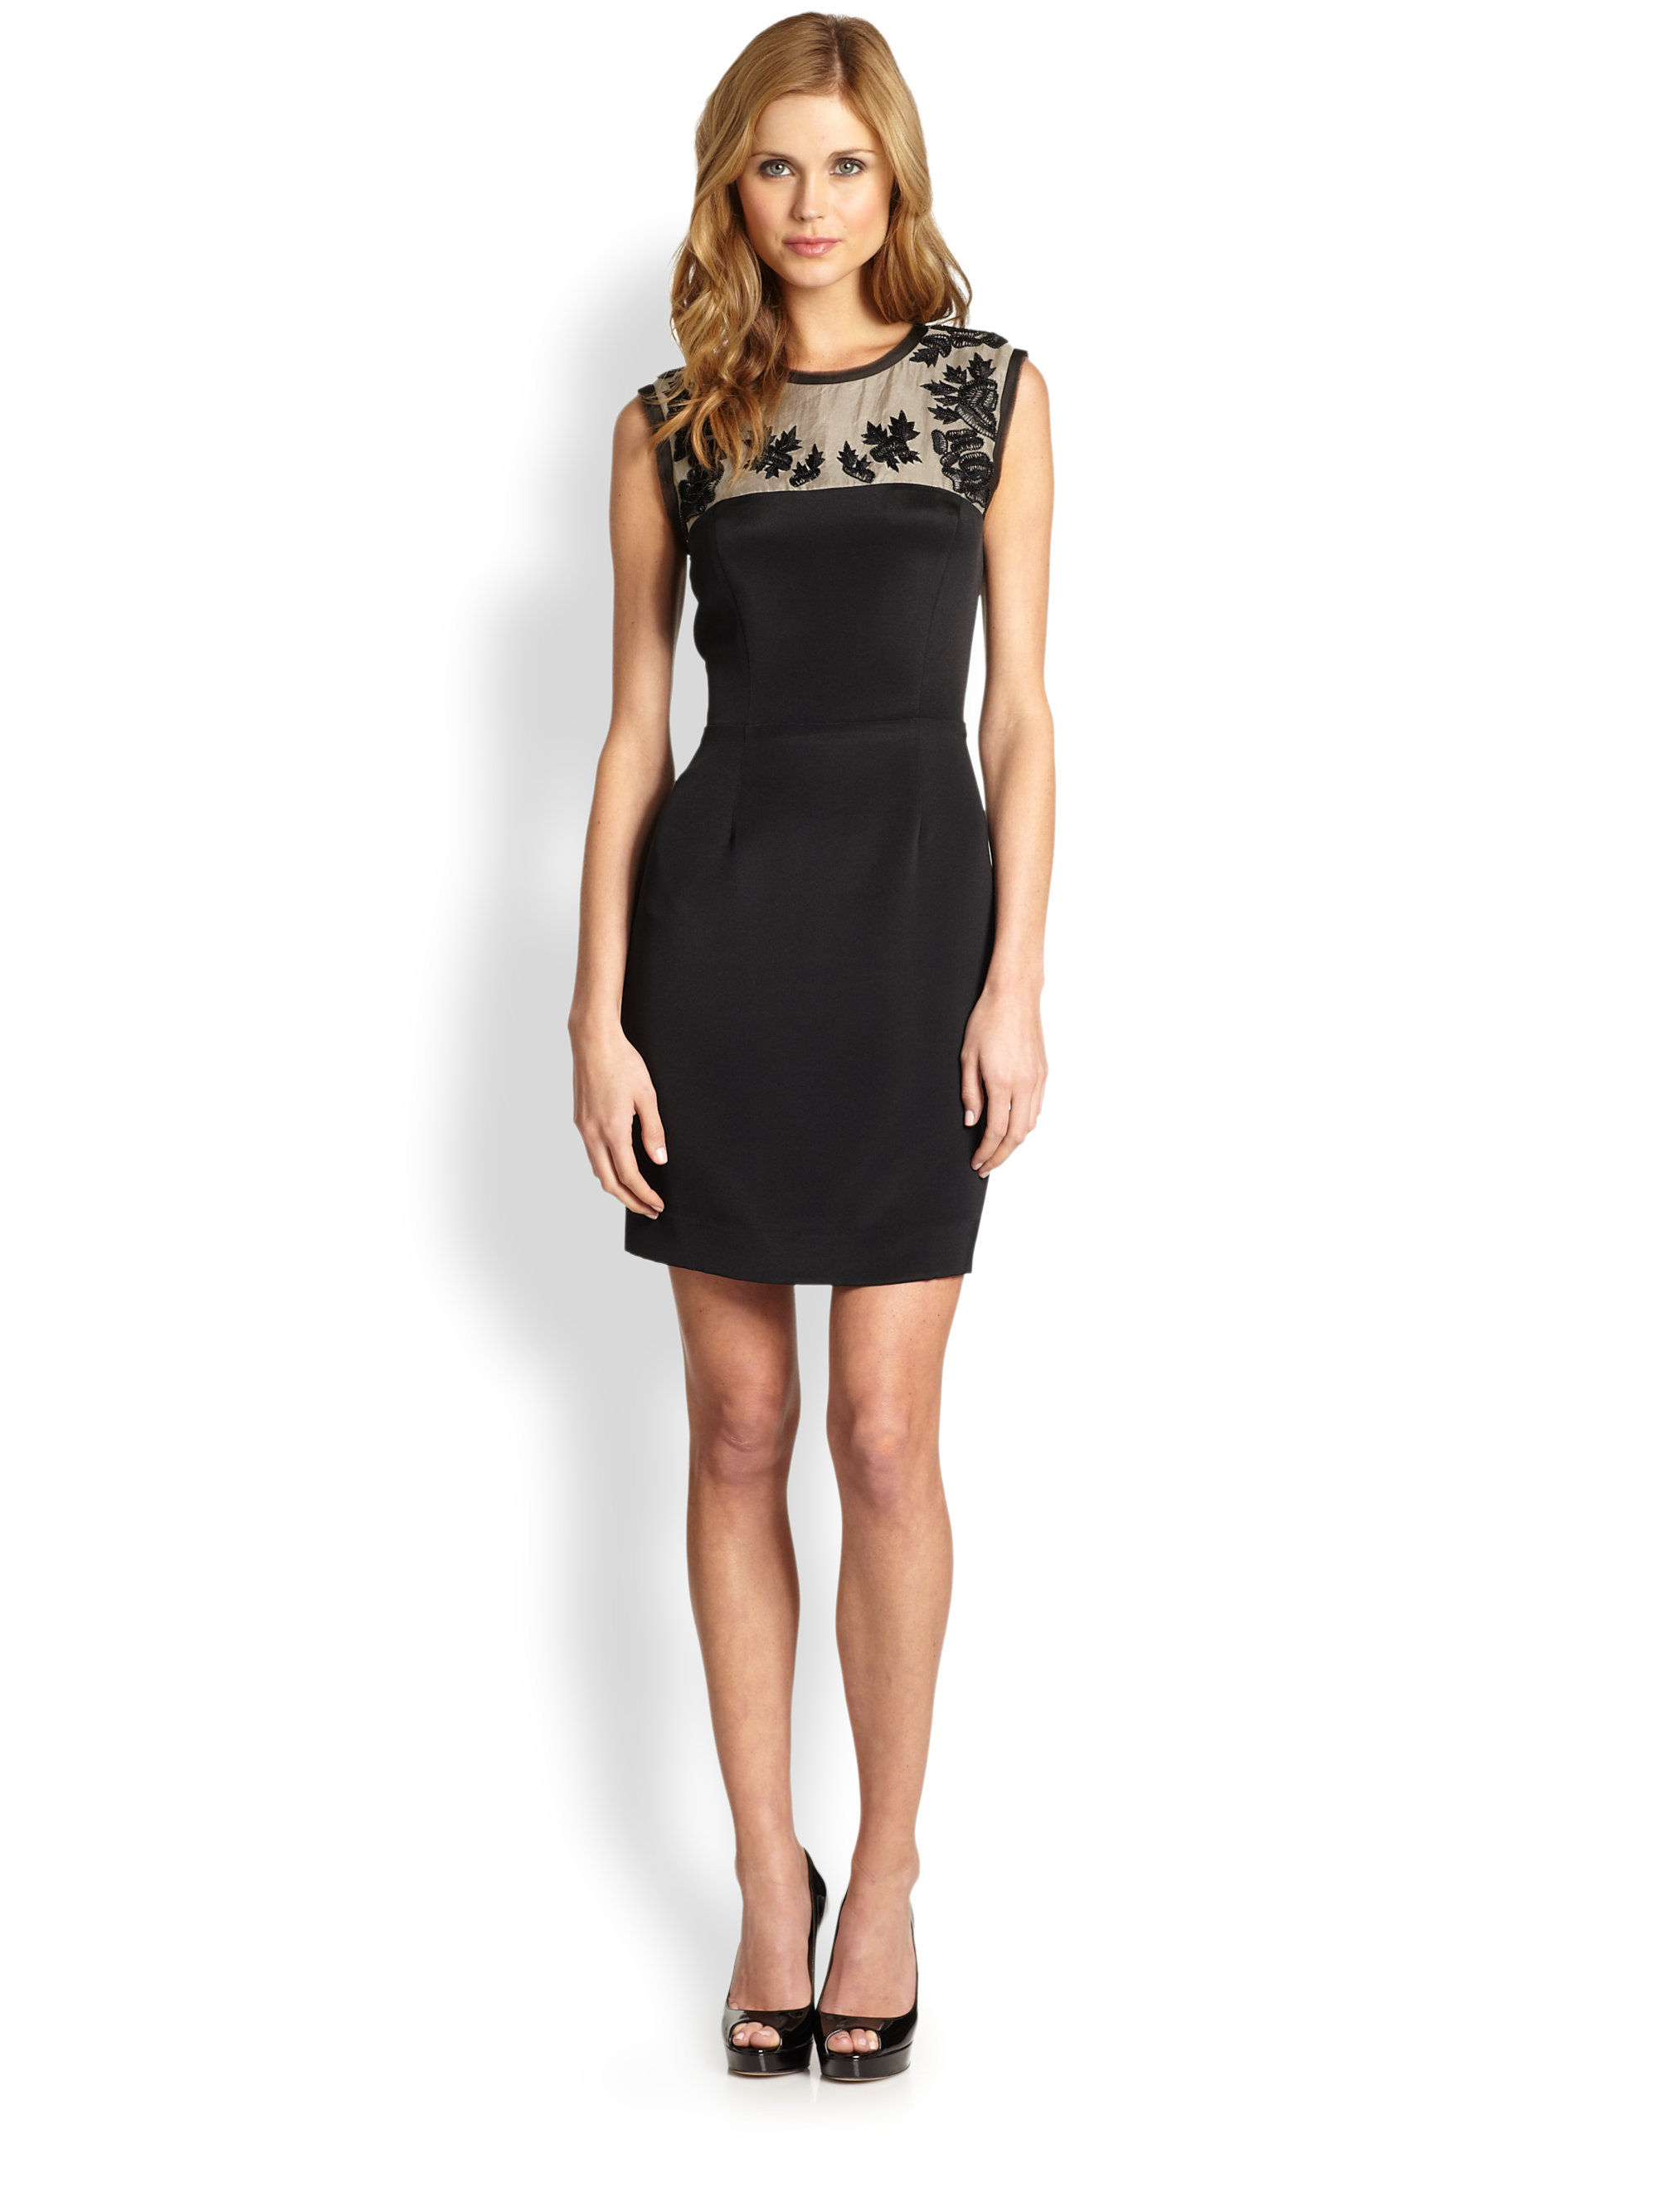 Nicole Miller Rose Embroidered Cocktail Dress in Black